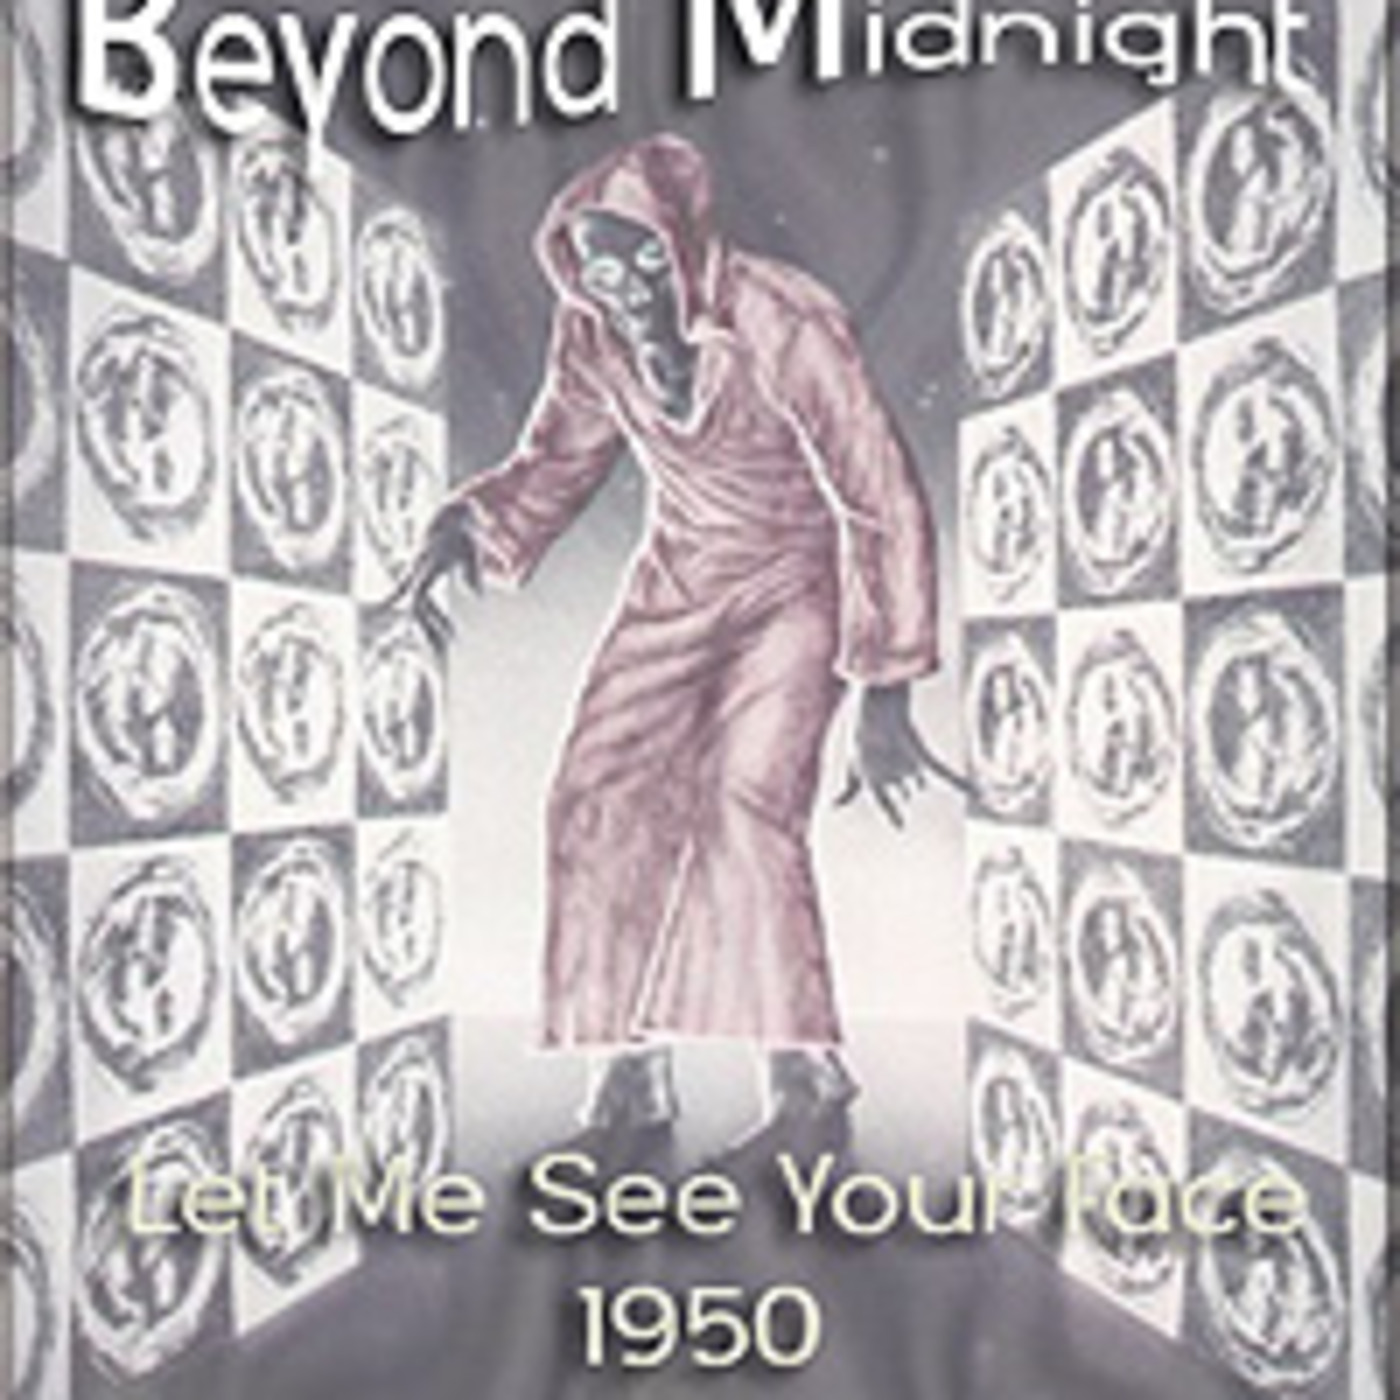 Beyond Midnight - Let Me See Your Face (1950) MP3